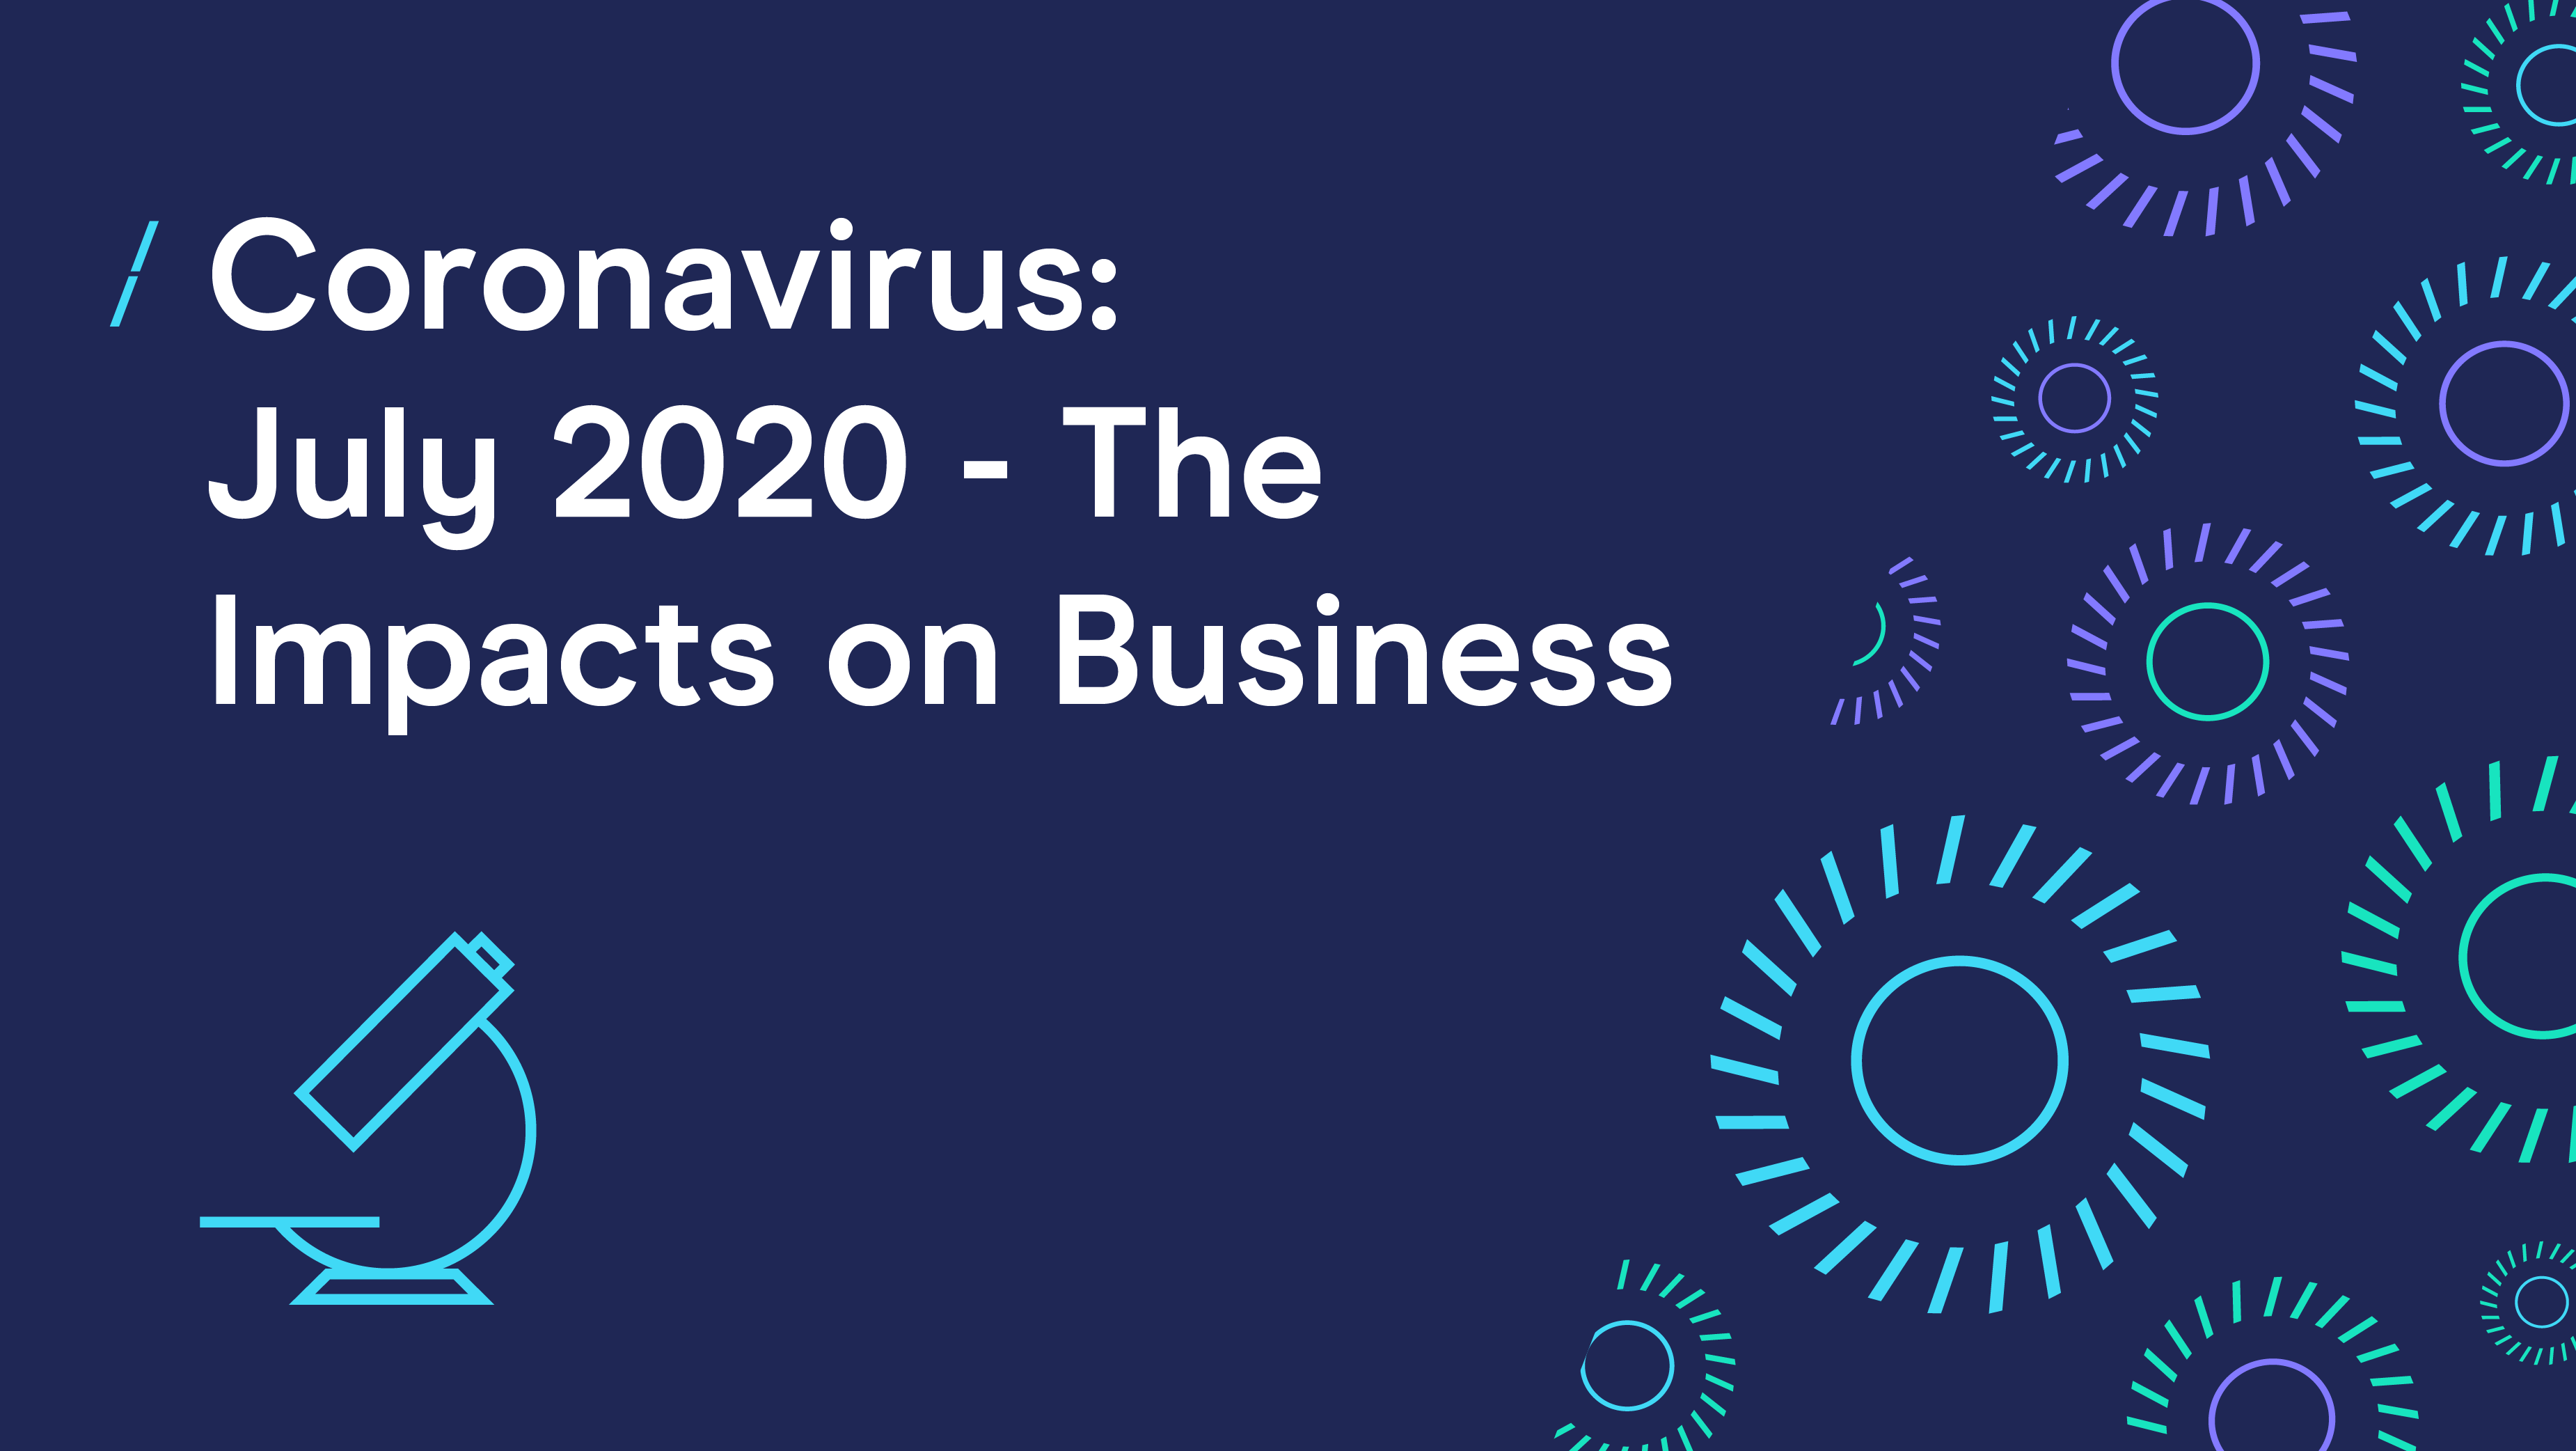 Coronavirus - July 2020 - The Impacts On Business.png